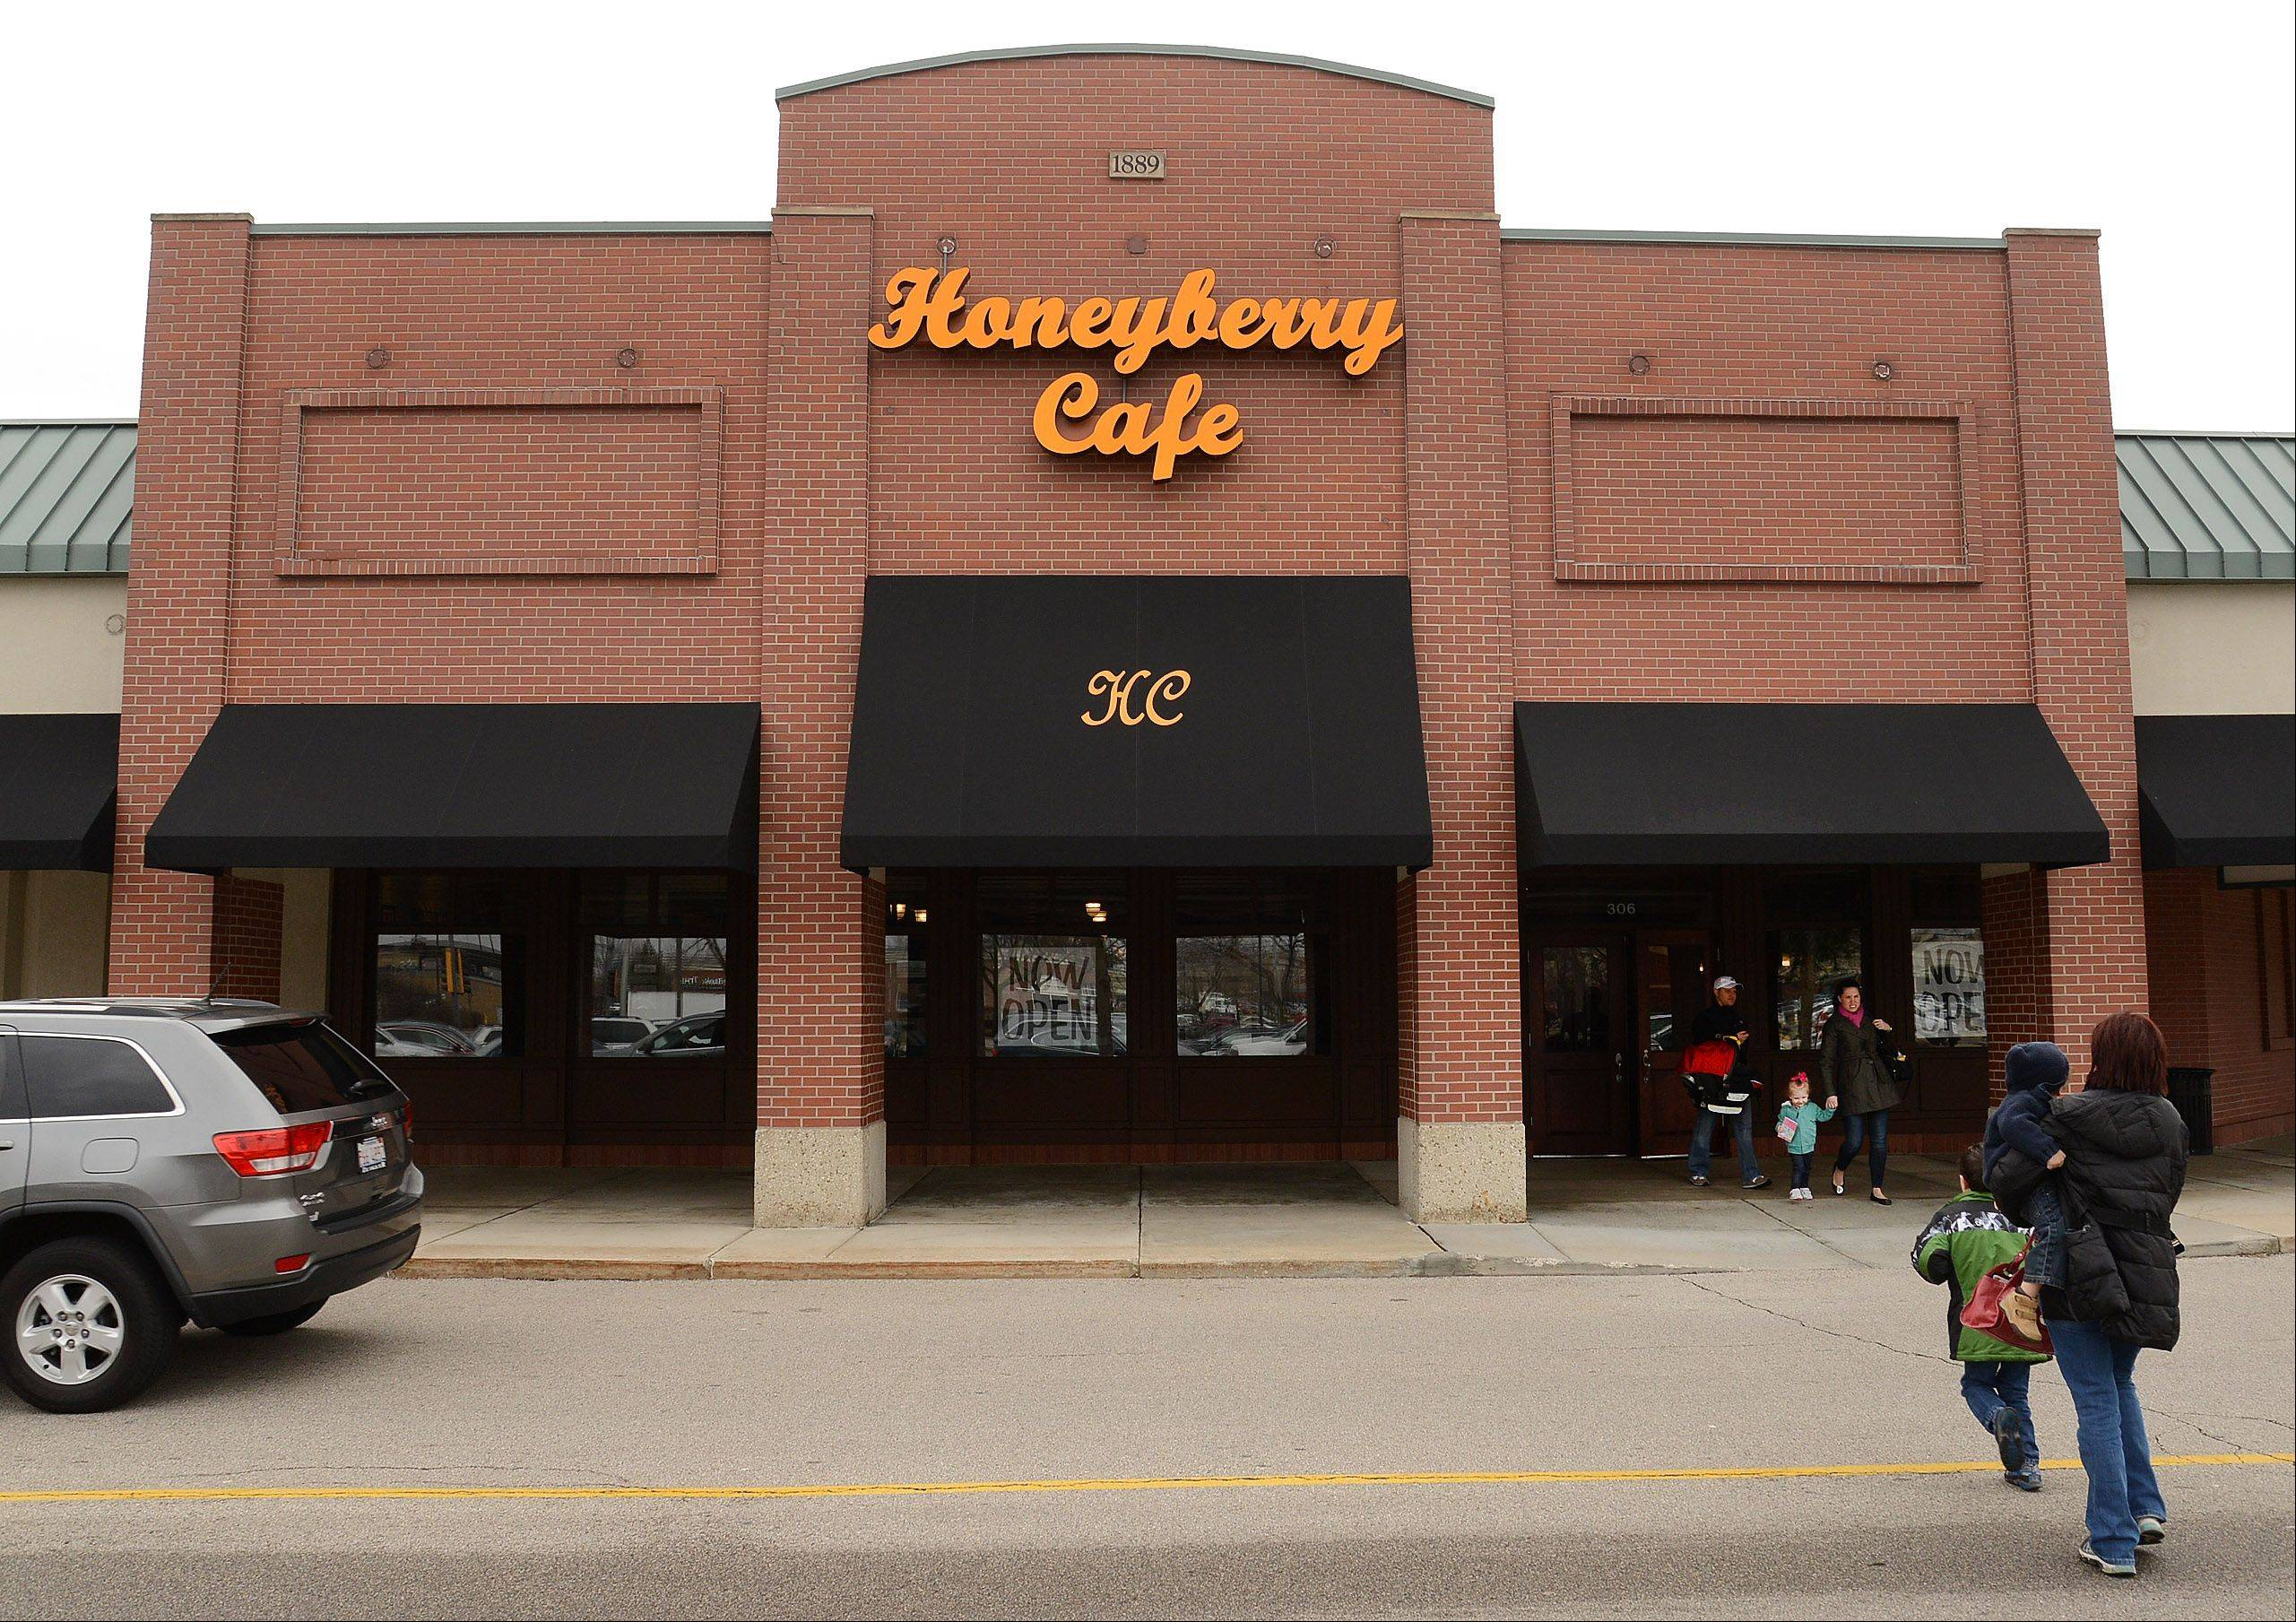 Honeyberry Cafe, a new breakfast and lunch restaurant, is using the space formerly occupied by Max & Erma's.